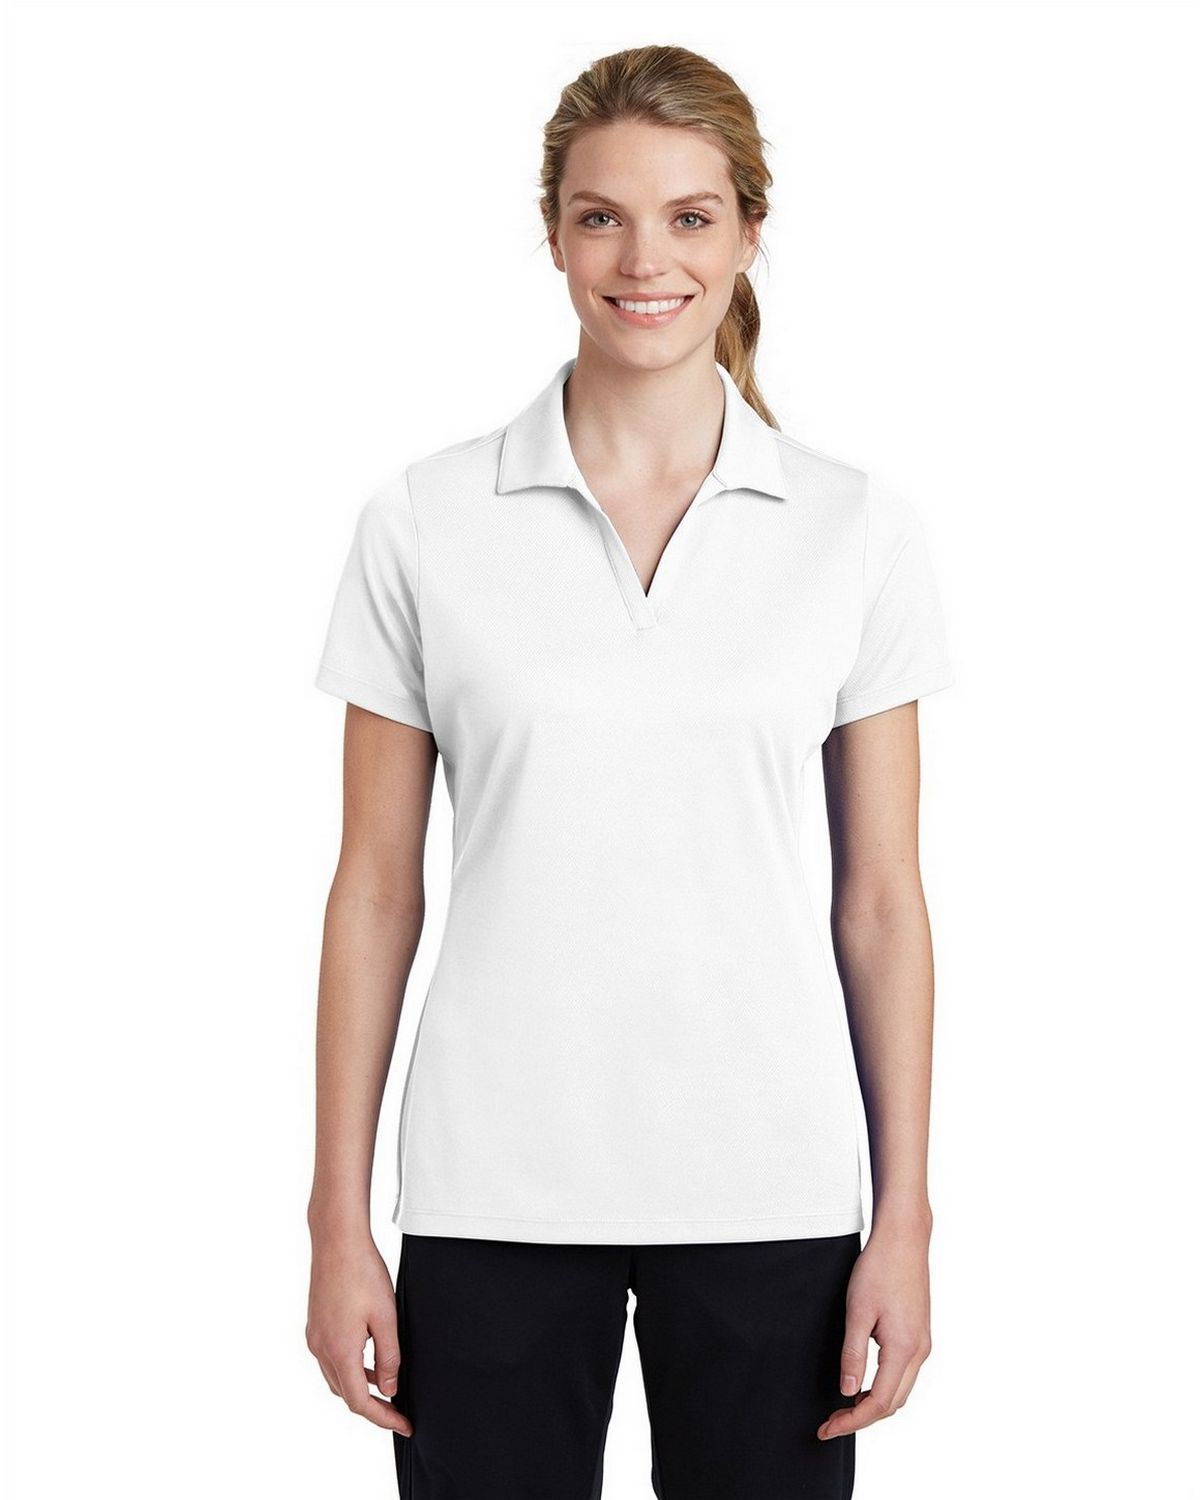 Sport Tek Lst640 Ladies Posicharge Racermesh Polo Lst655 ladies side colorblock performance polo. sport tek lst640 women s posicharge racermesh polo